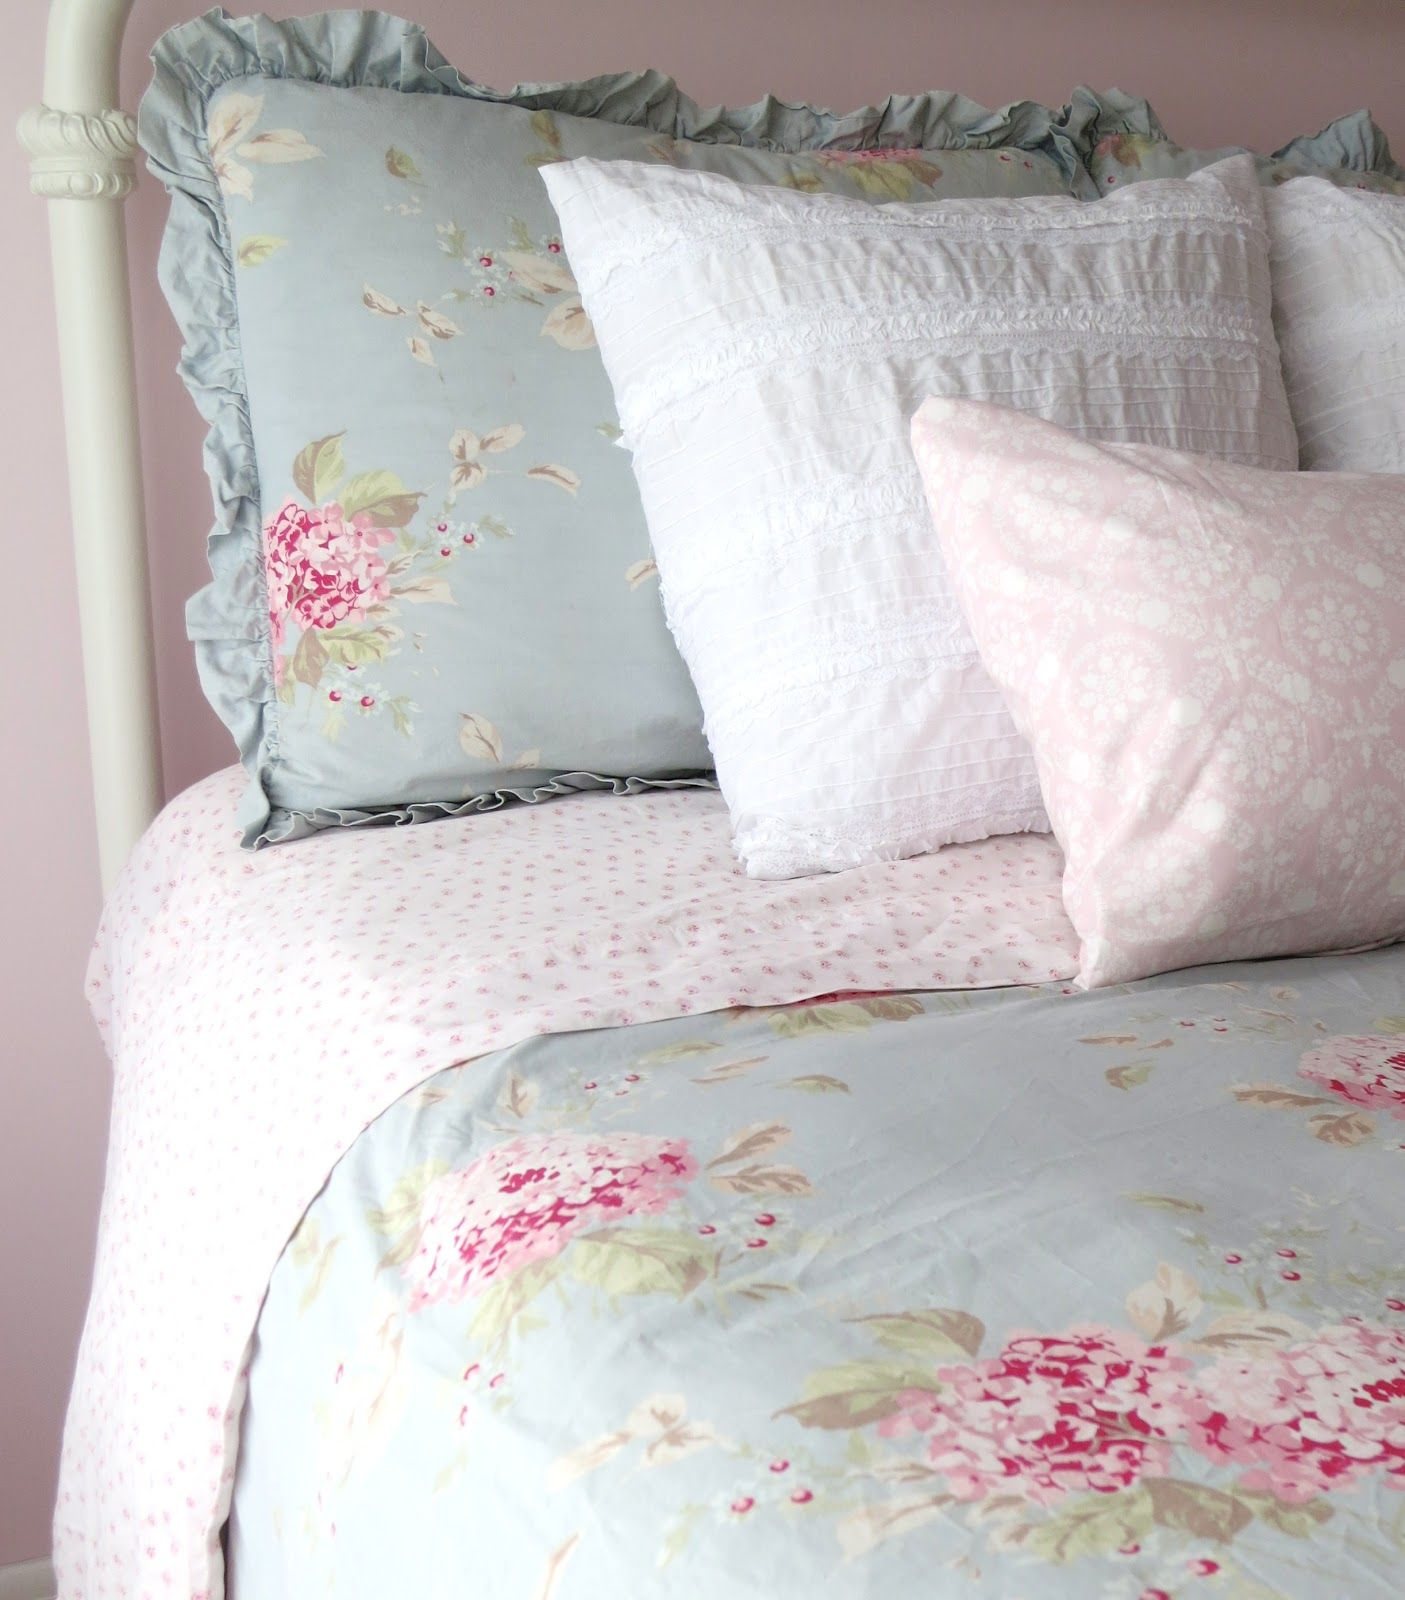 Mimi S Vintage Charm December 2012 Shabby Chic Bedding Target Shabby Chic Bedding Shabby Chic Sheets